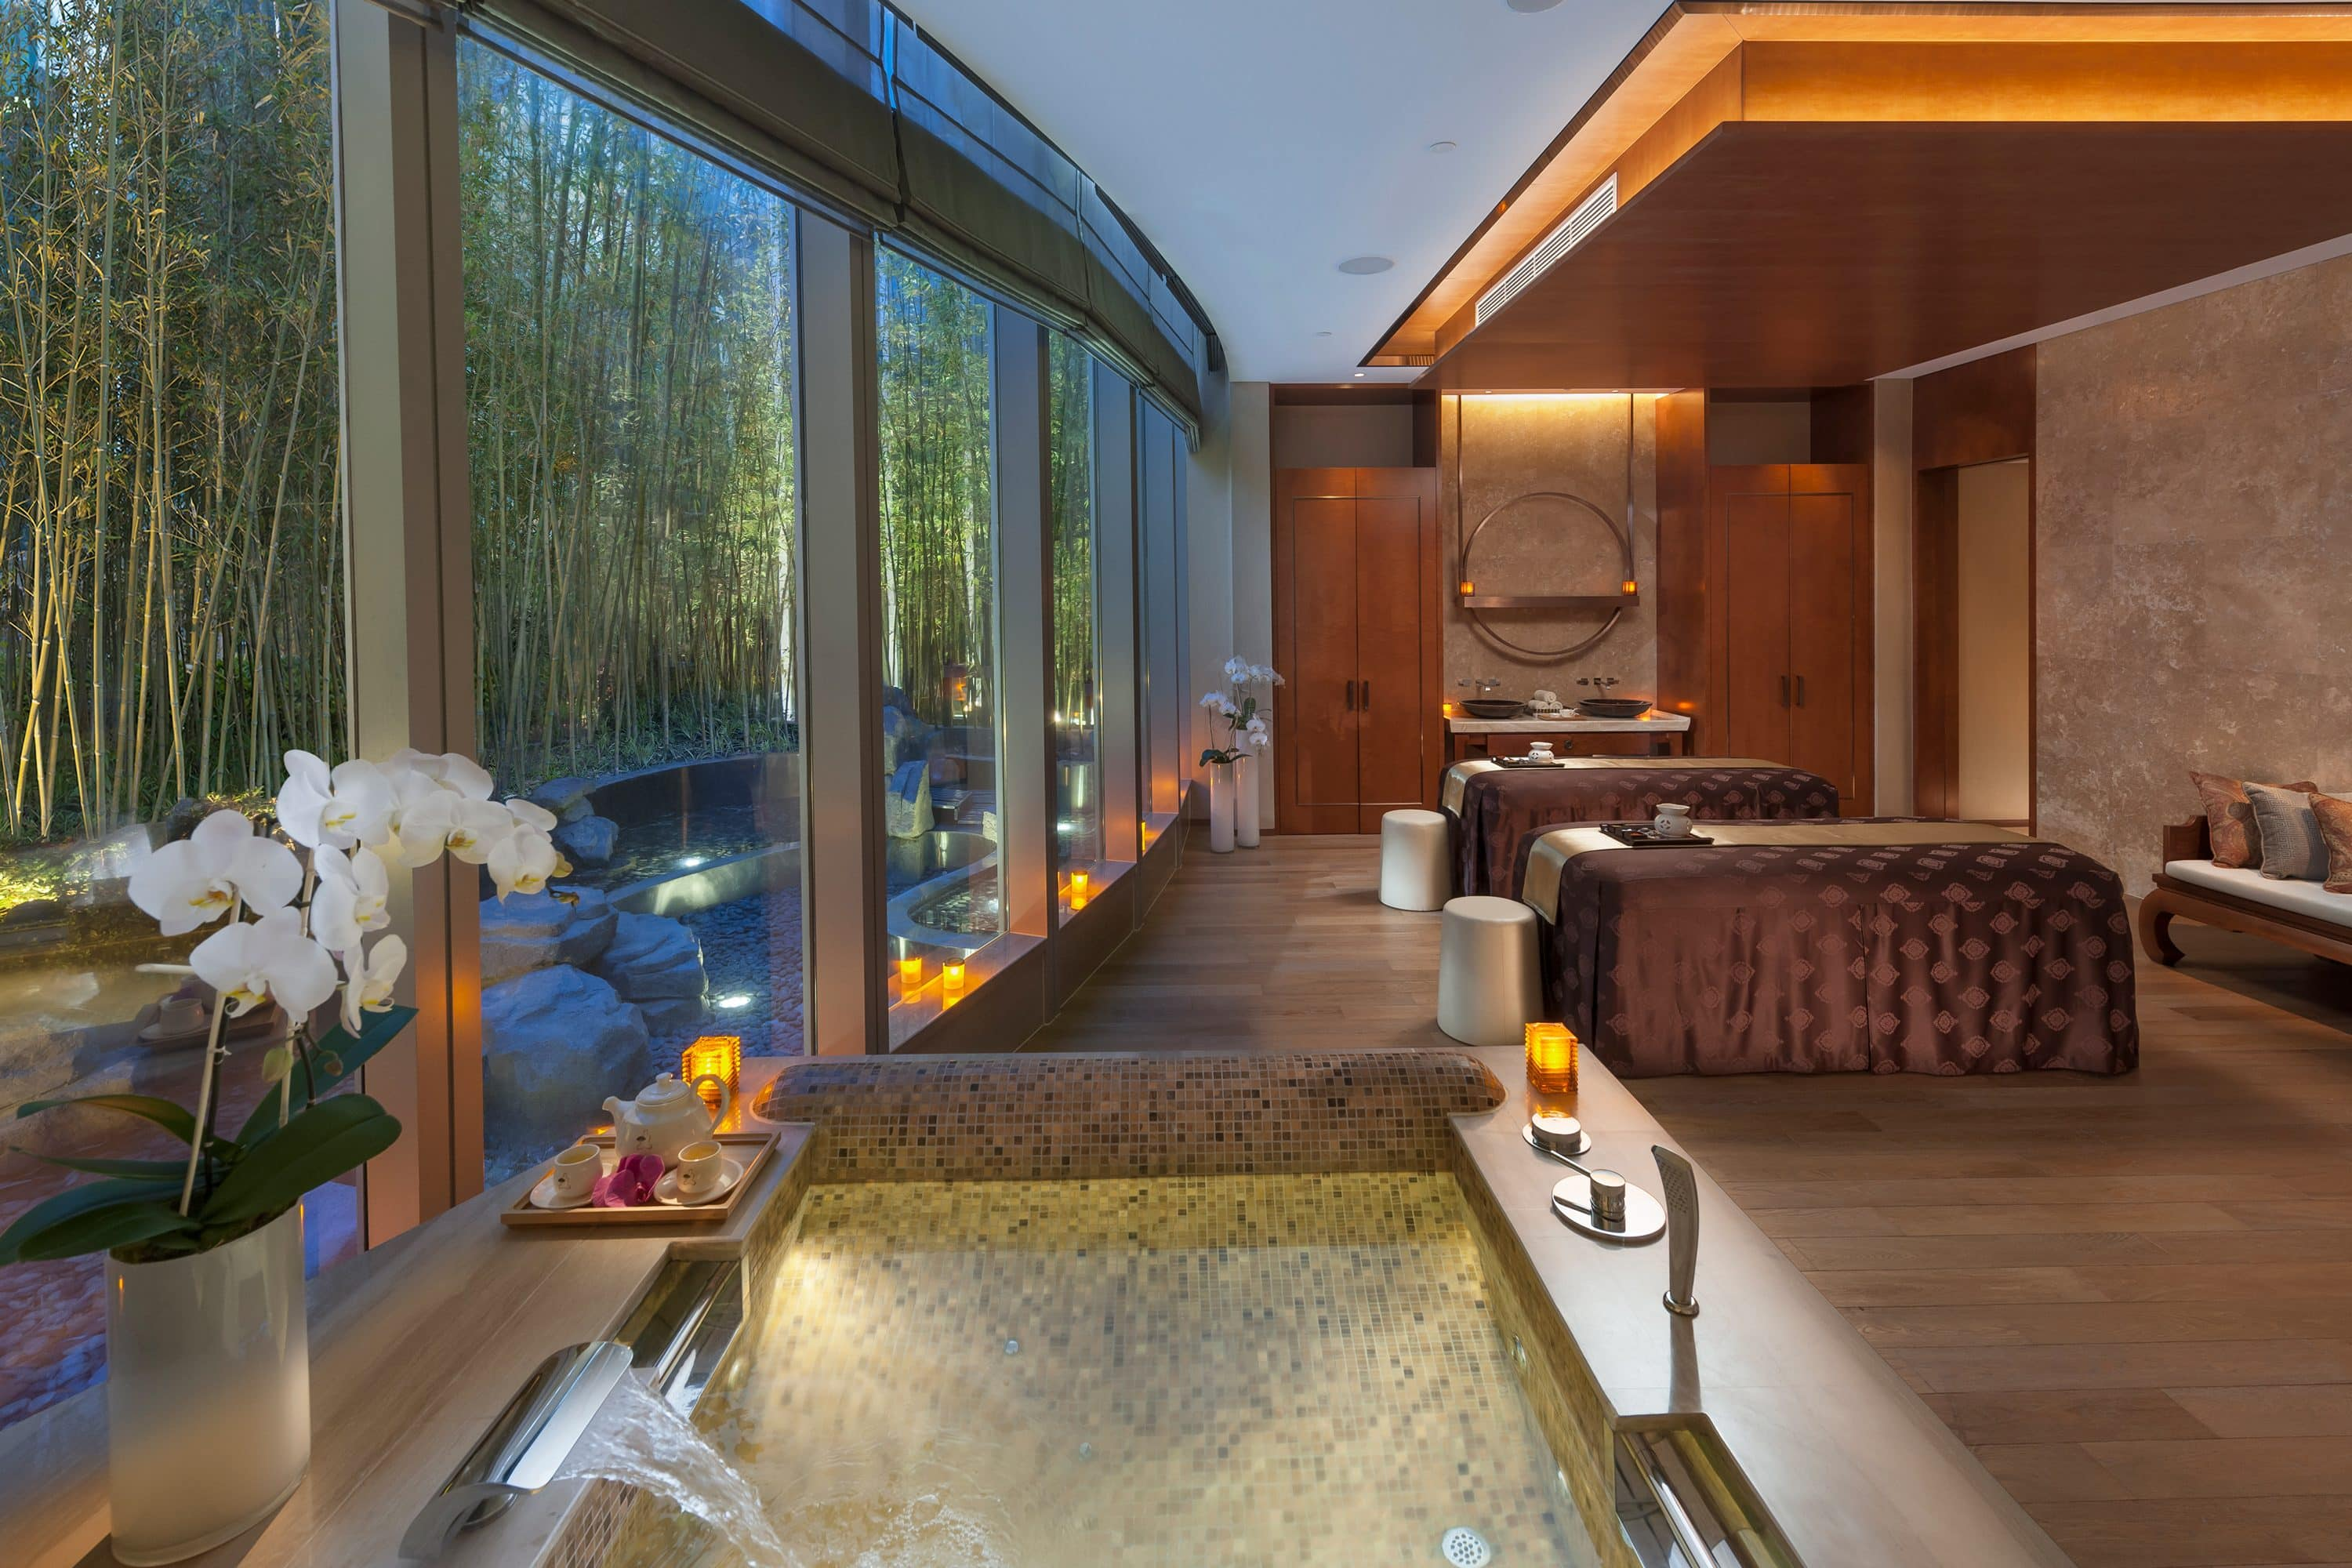 Couple's treatment suite at Mandarin Oriental Pudong, Shanghai